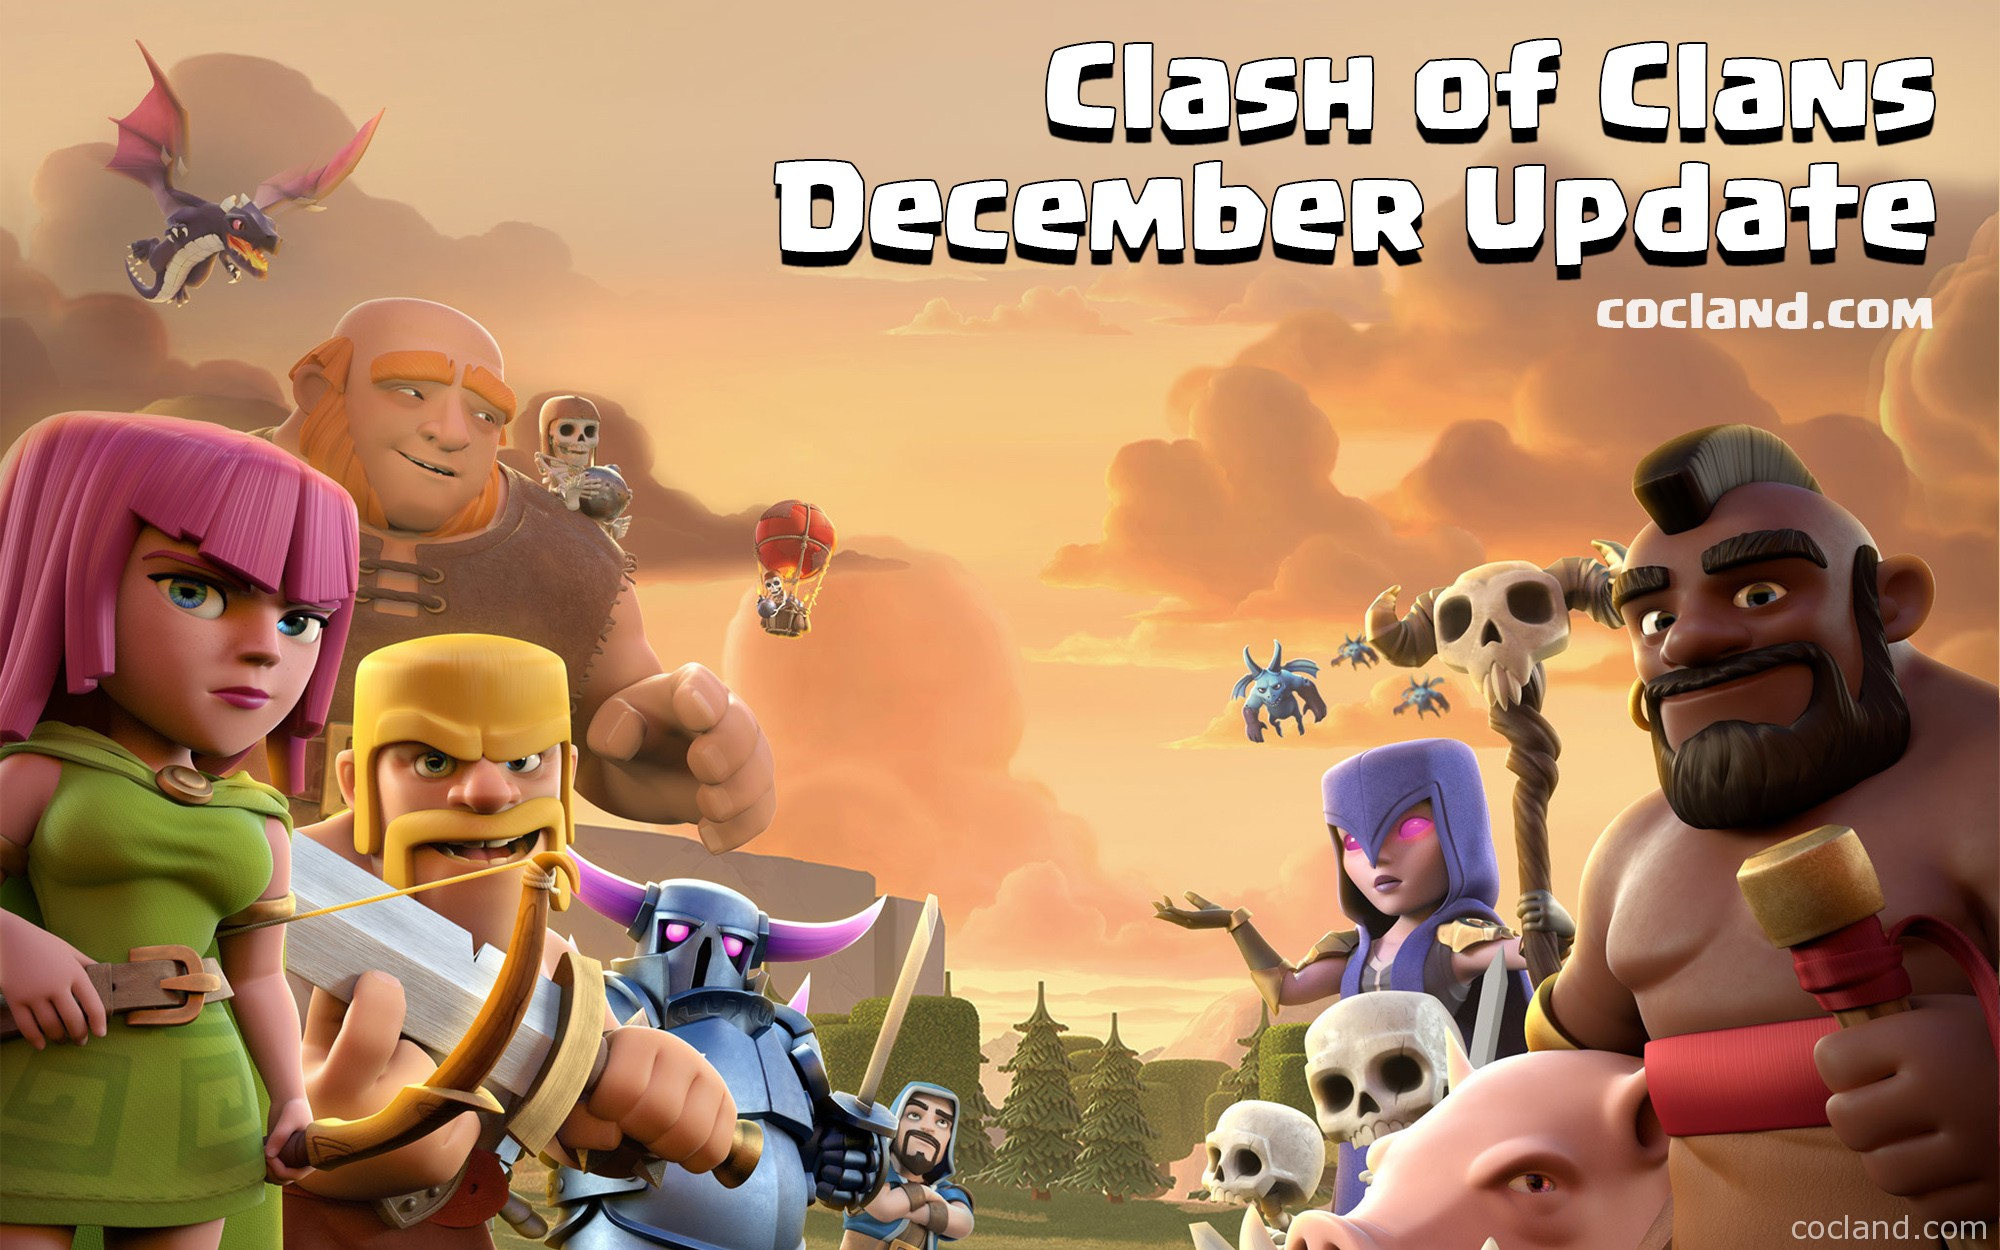 Clash of Clans December Update